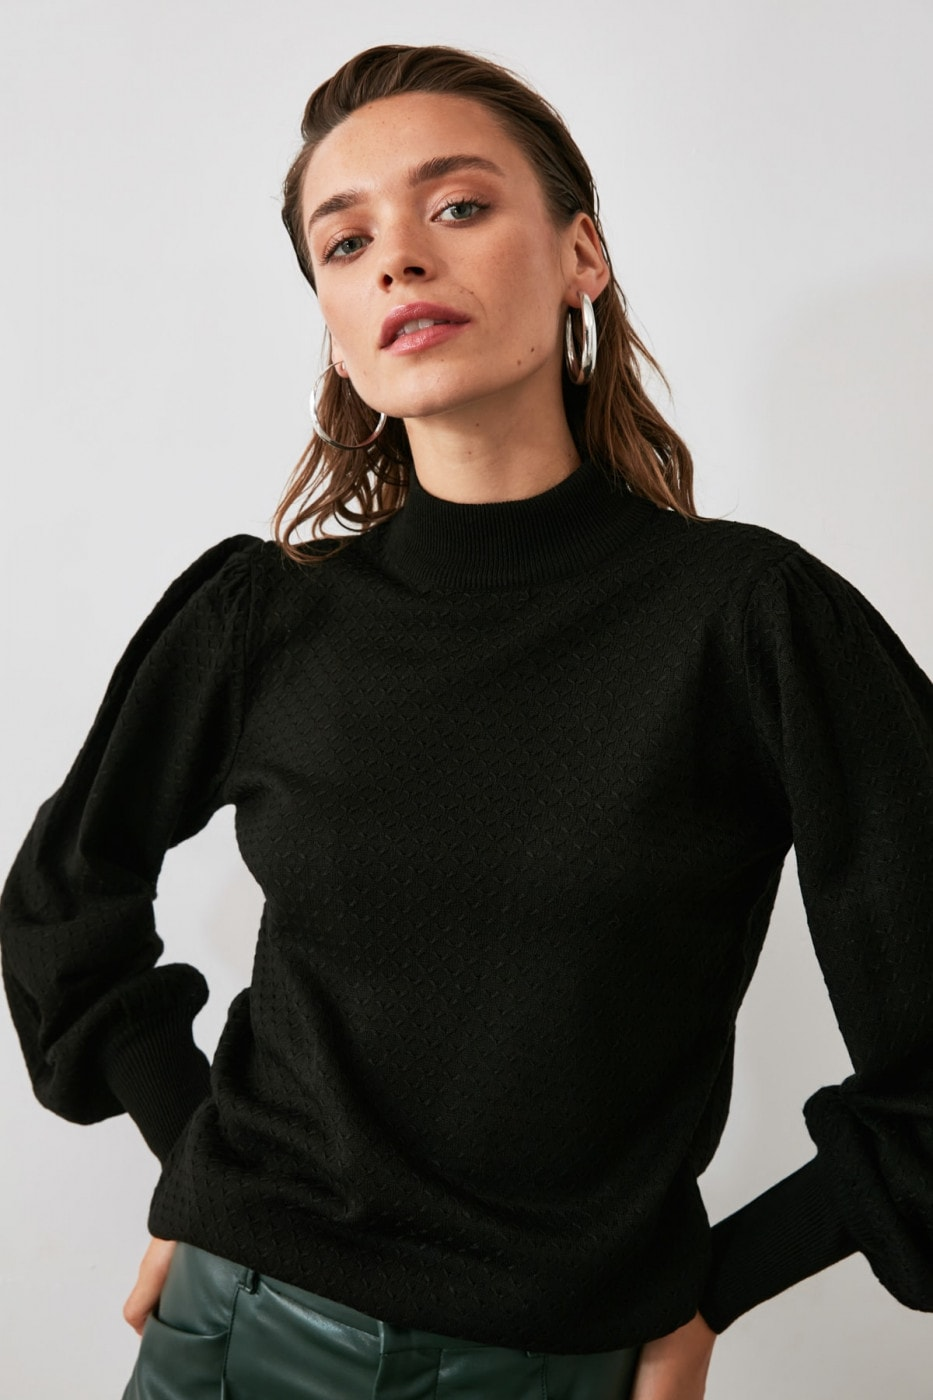 Trendyol Black Balloon Sleeve Knitting Detailed Knitwear Sweater